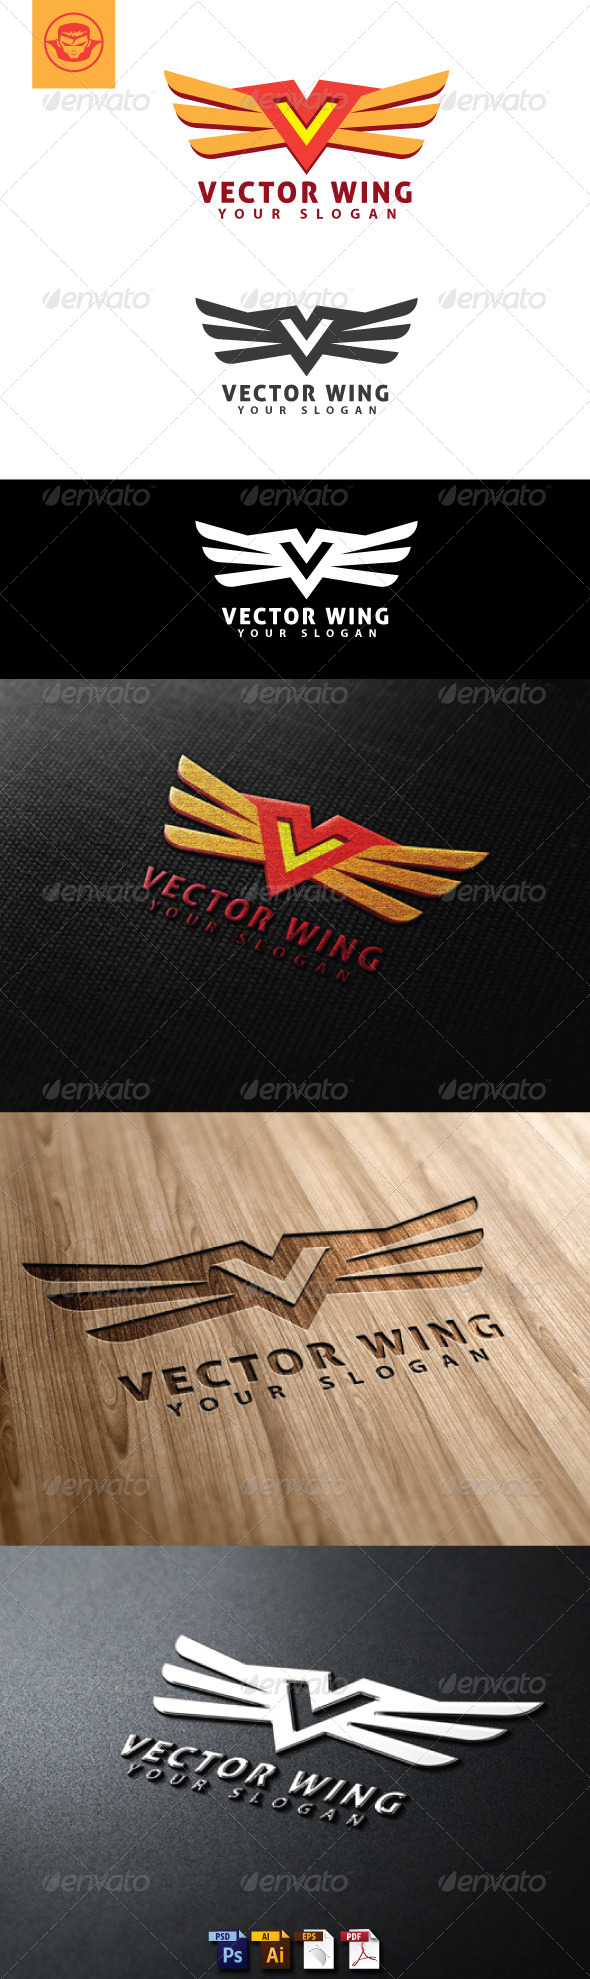 Vector Wing Logo Template - Letters Logo Templates